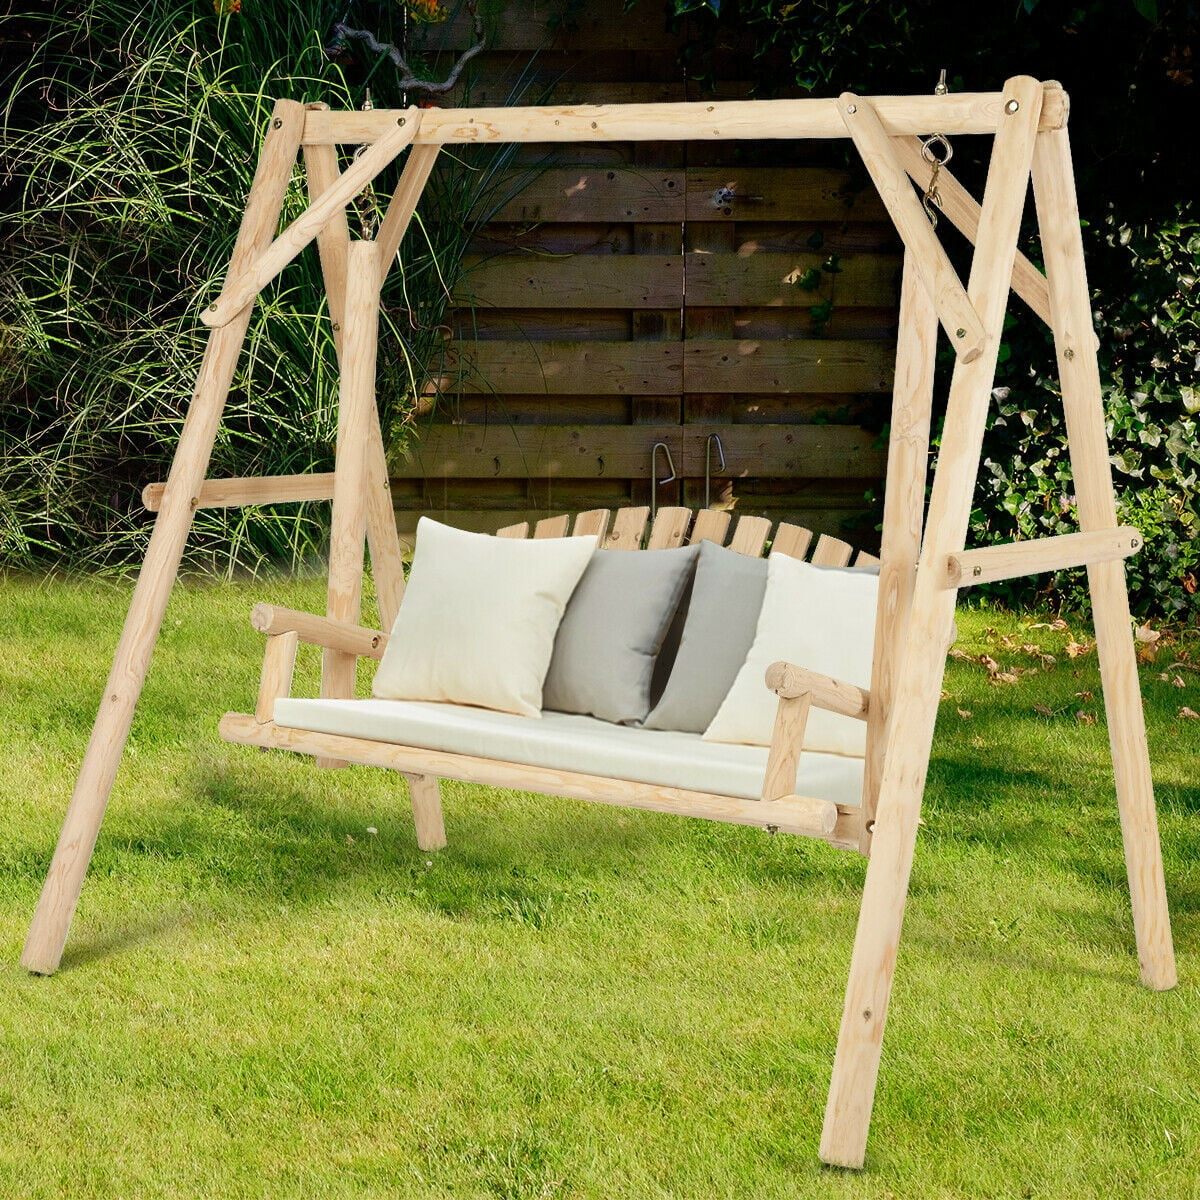 Rustic Wooden Porch Swing Bench With A, Outdoor Swing Bench With Stand